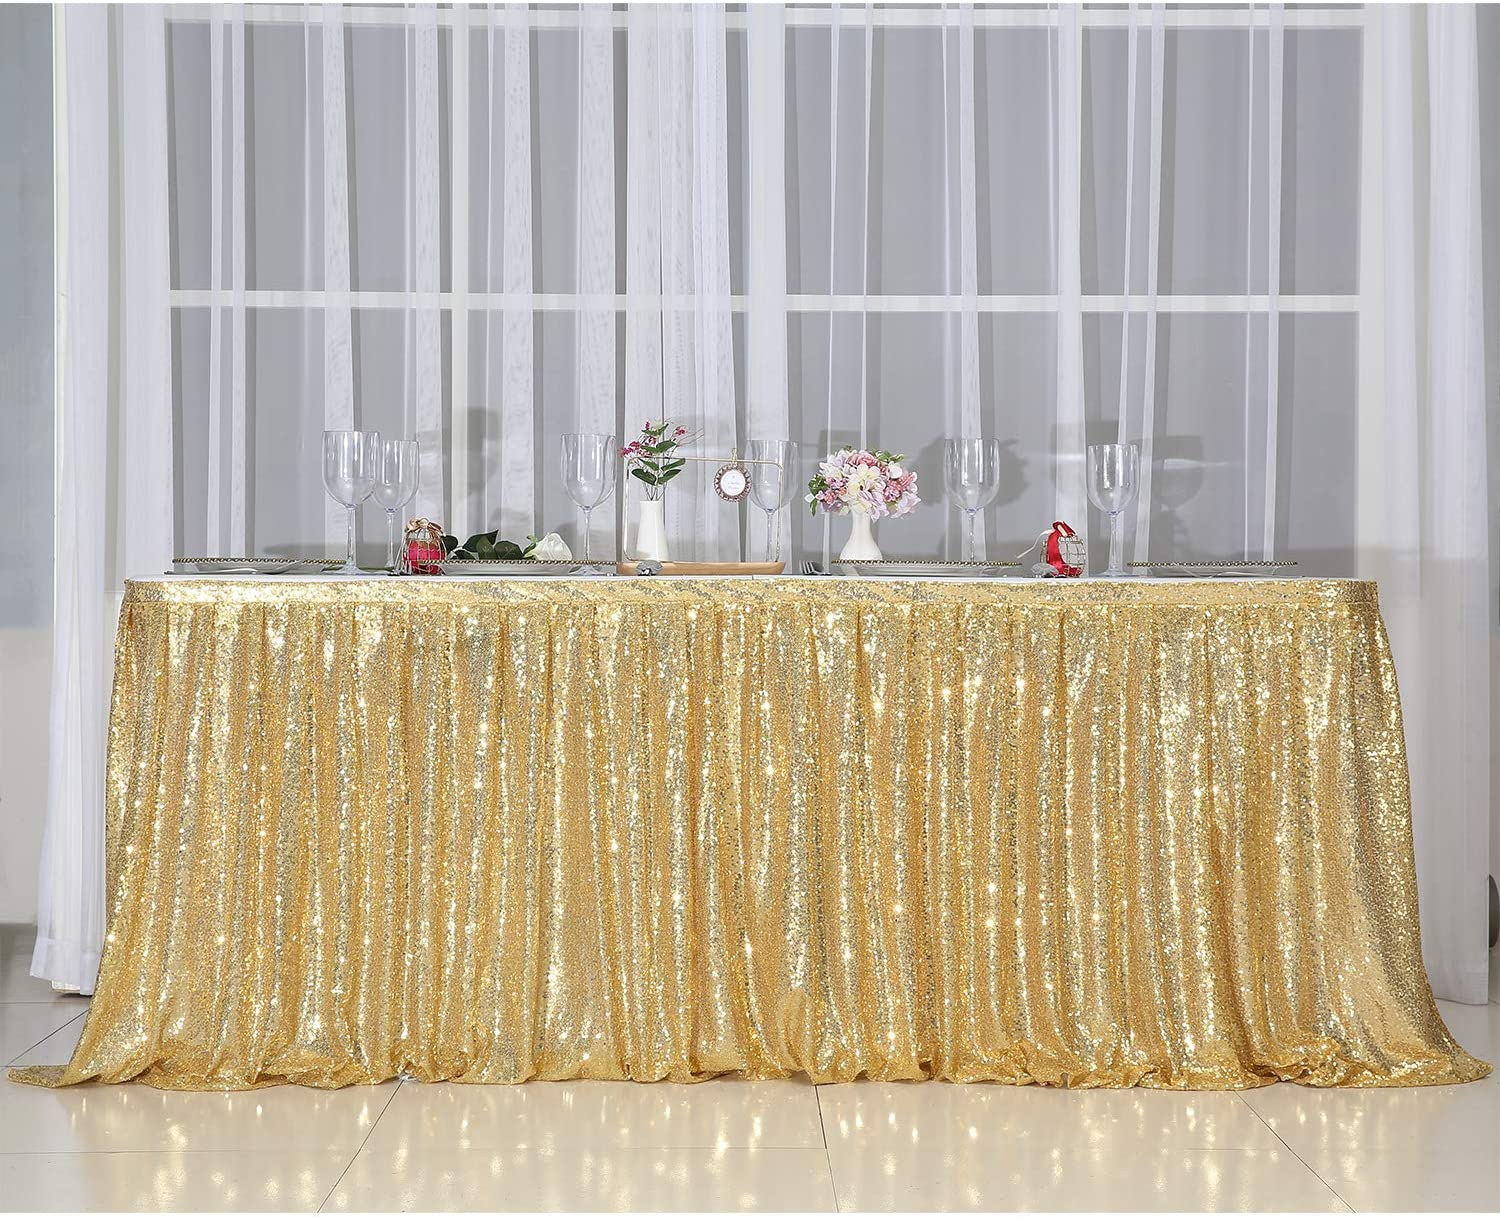 PartyDelight 9ft Gold Sequin Table Skirt for Round/Rectangle/Square Table for Birthday Party Wedding Christmas.